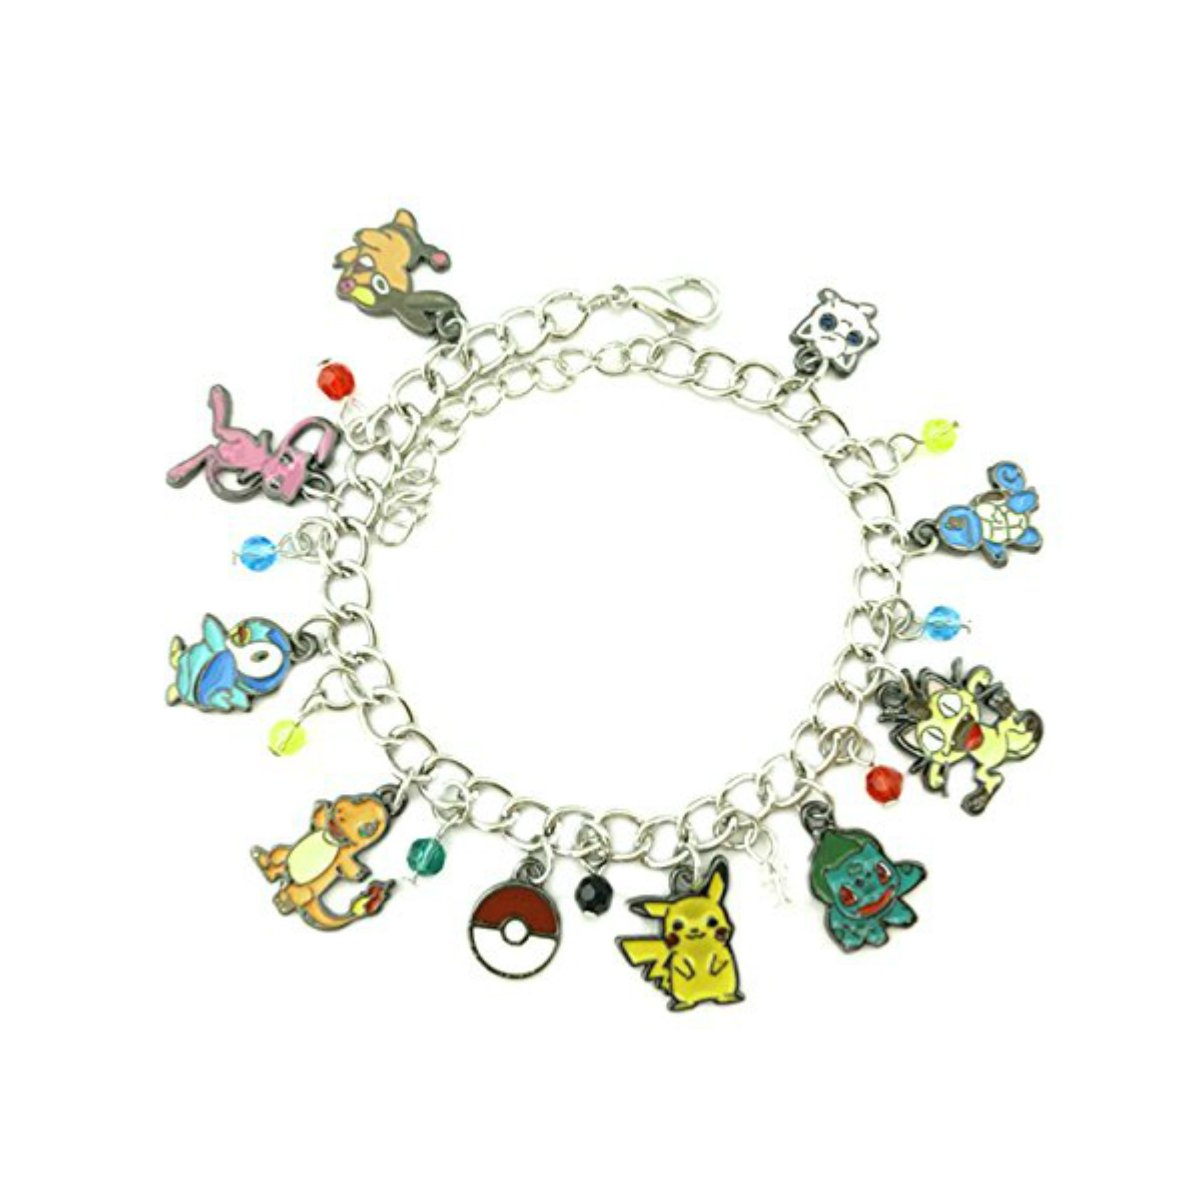 US FAMILY PokeMon Game Anime Theme Multi Charms Jewelry Bracelets Charm by Family Brands